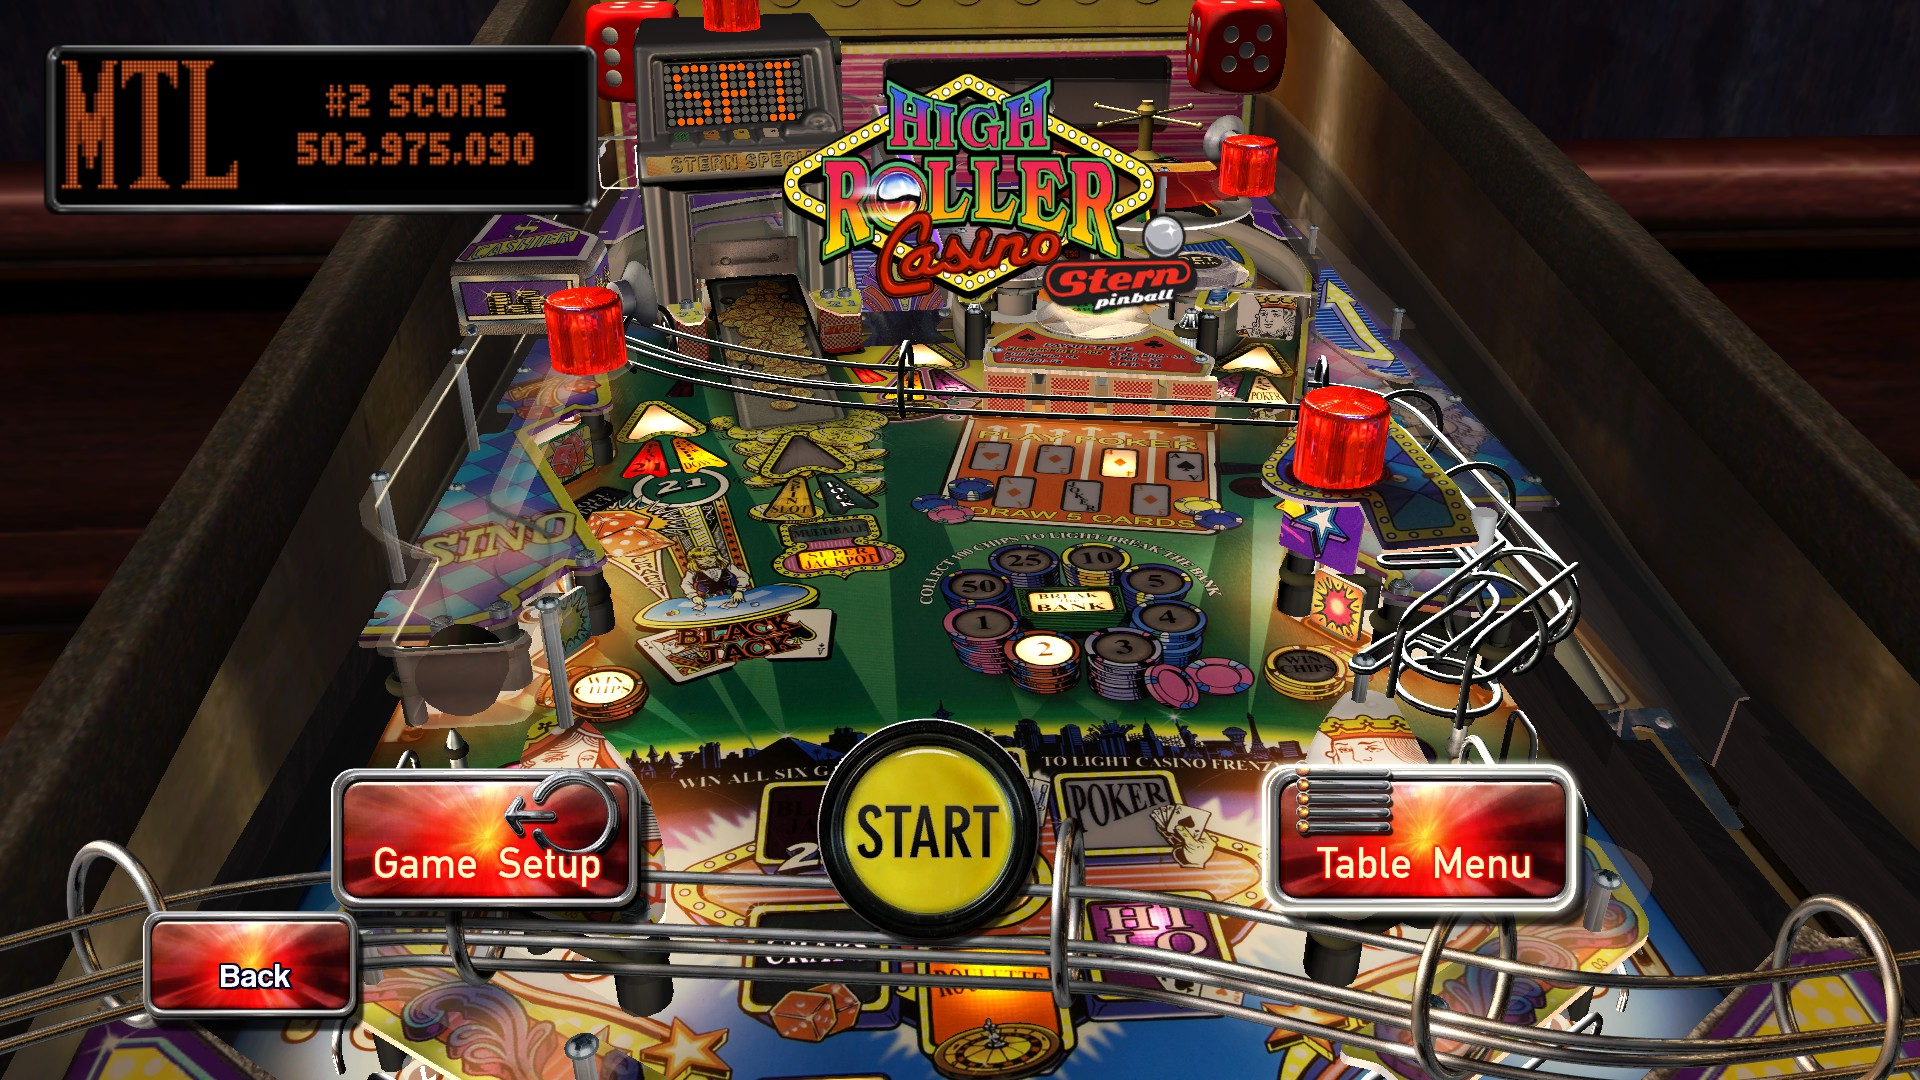 High roller casino pc game casino city development front help that water